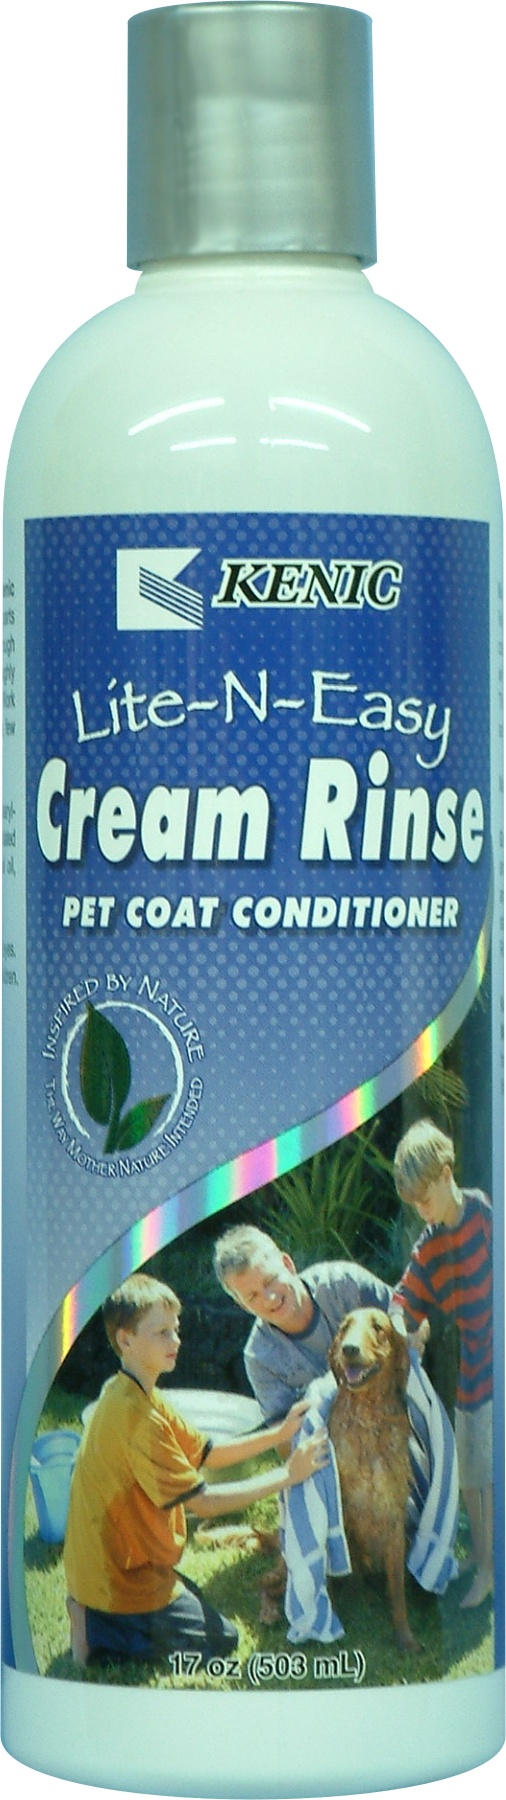 kenic Lite-N-Easy Pet Cream Rinse